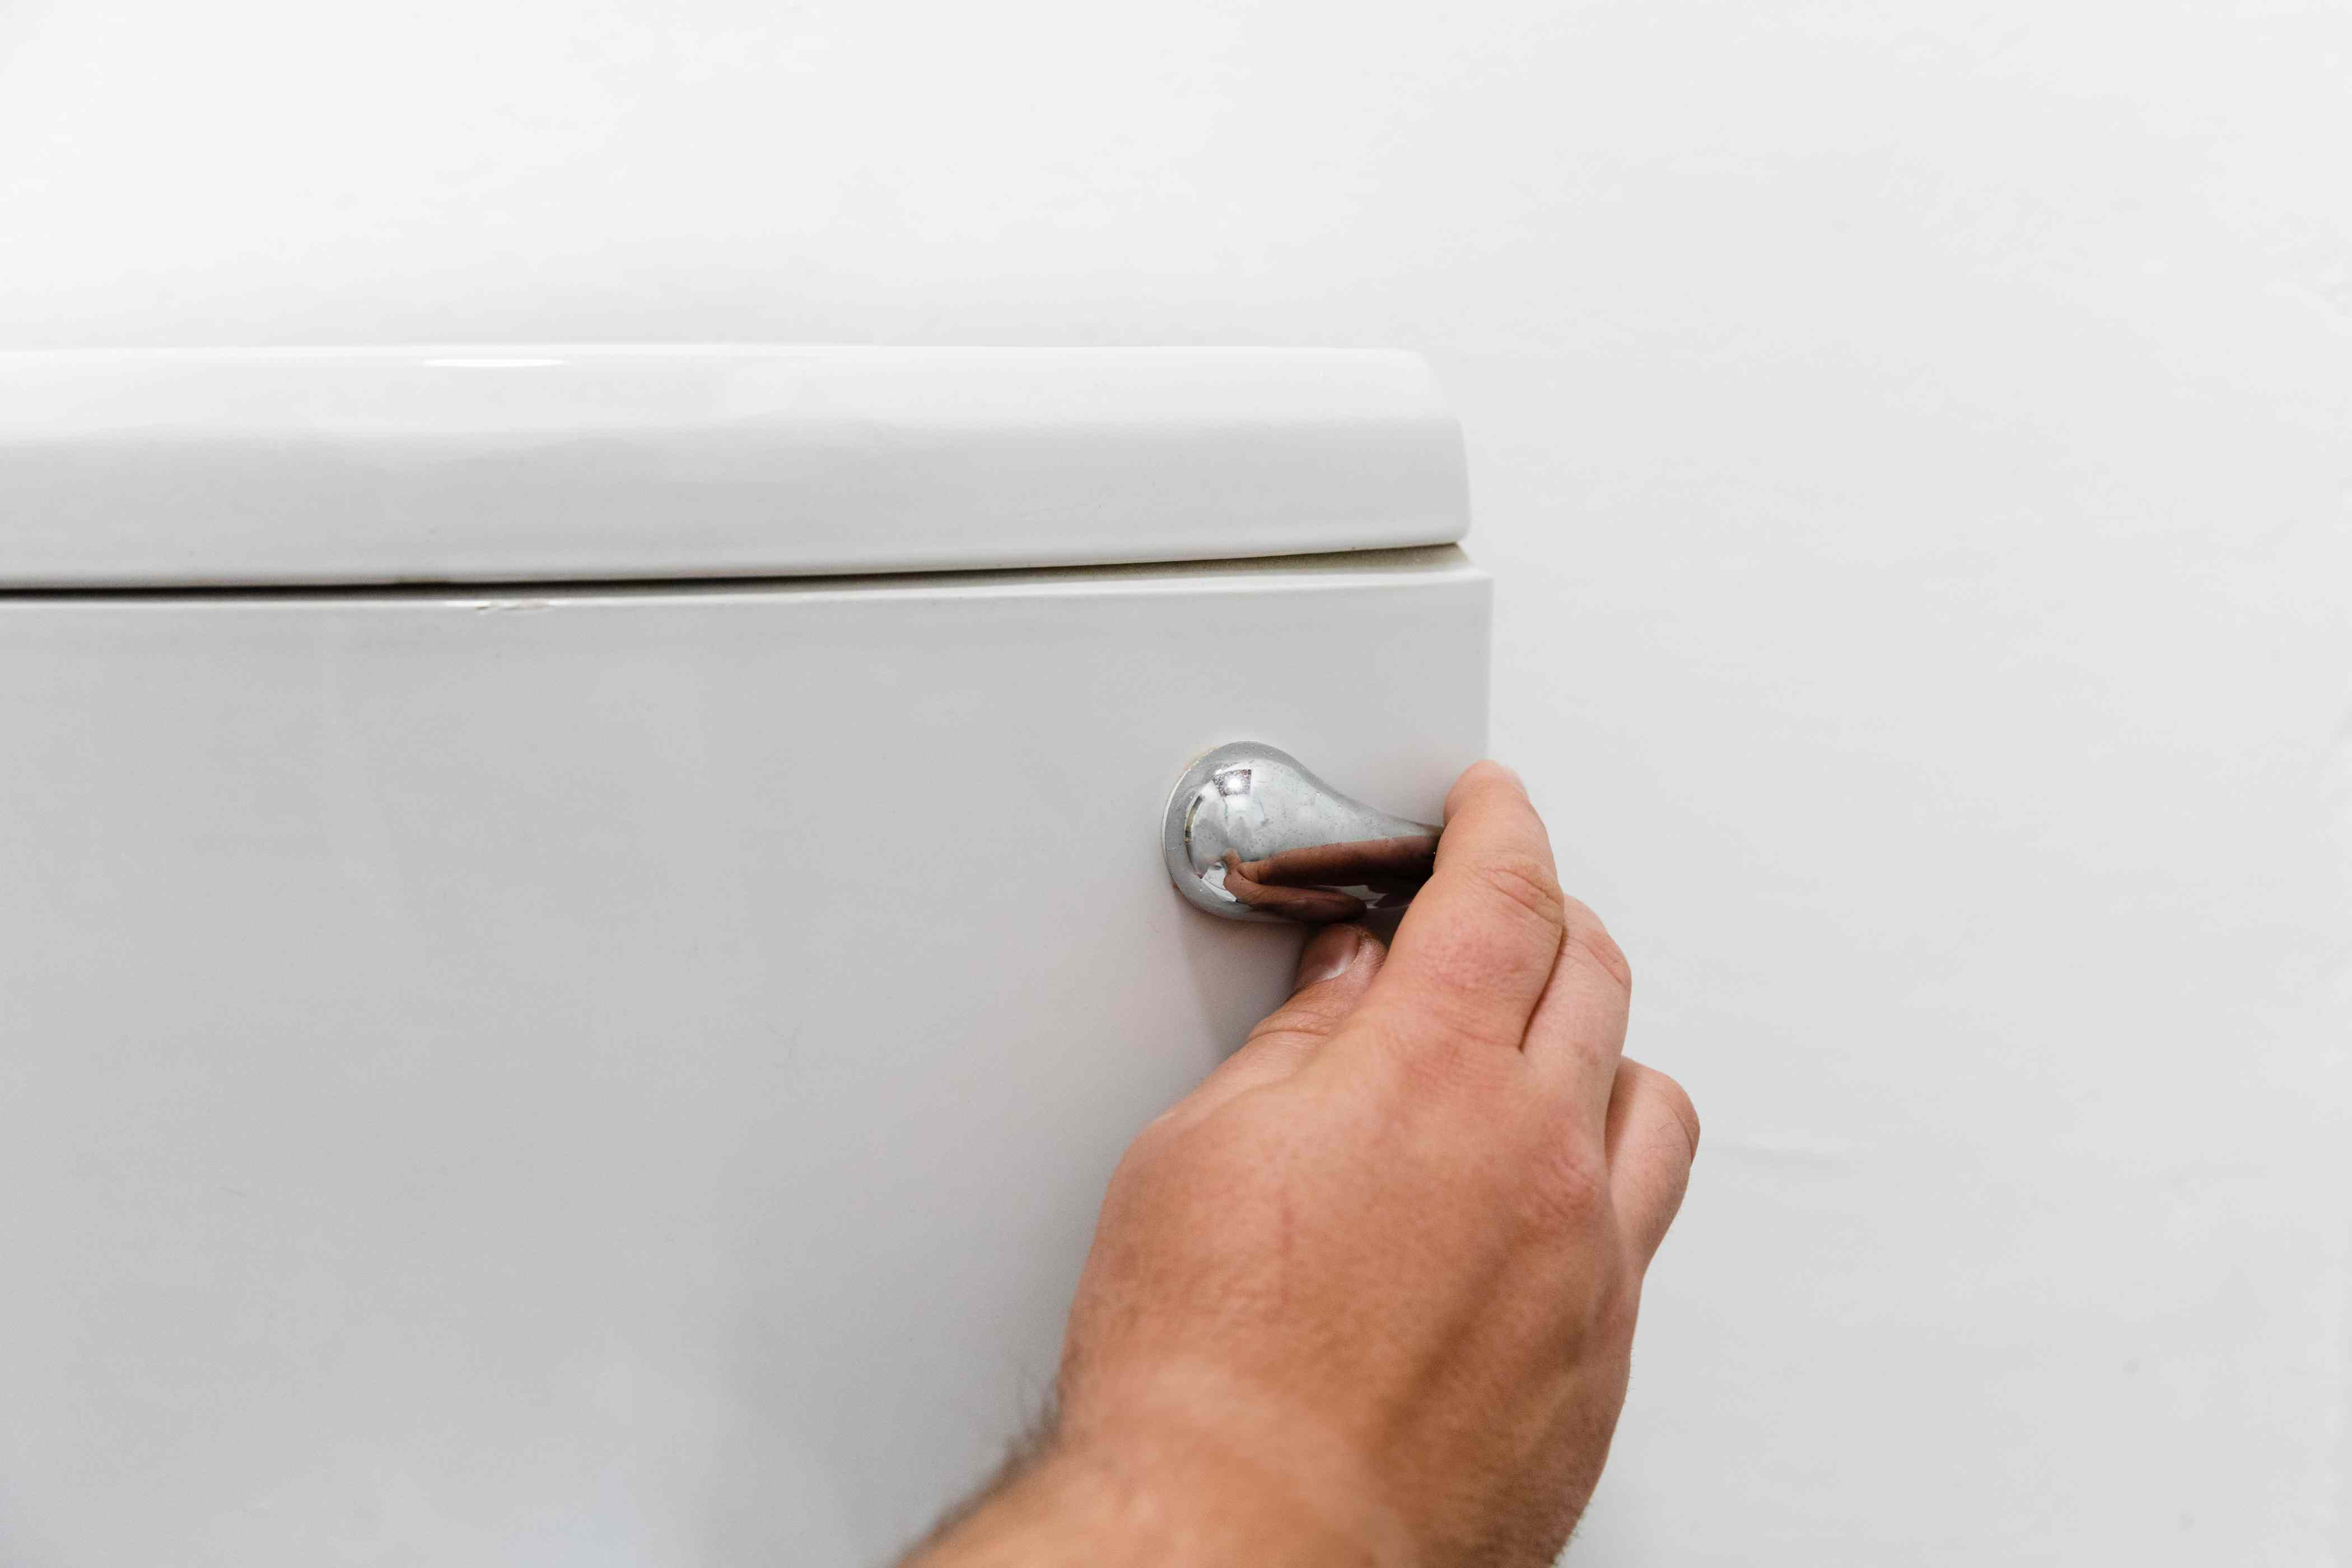 jiggling a loose toilet handle